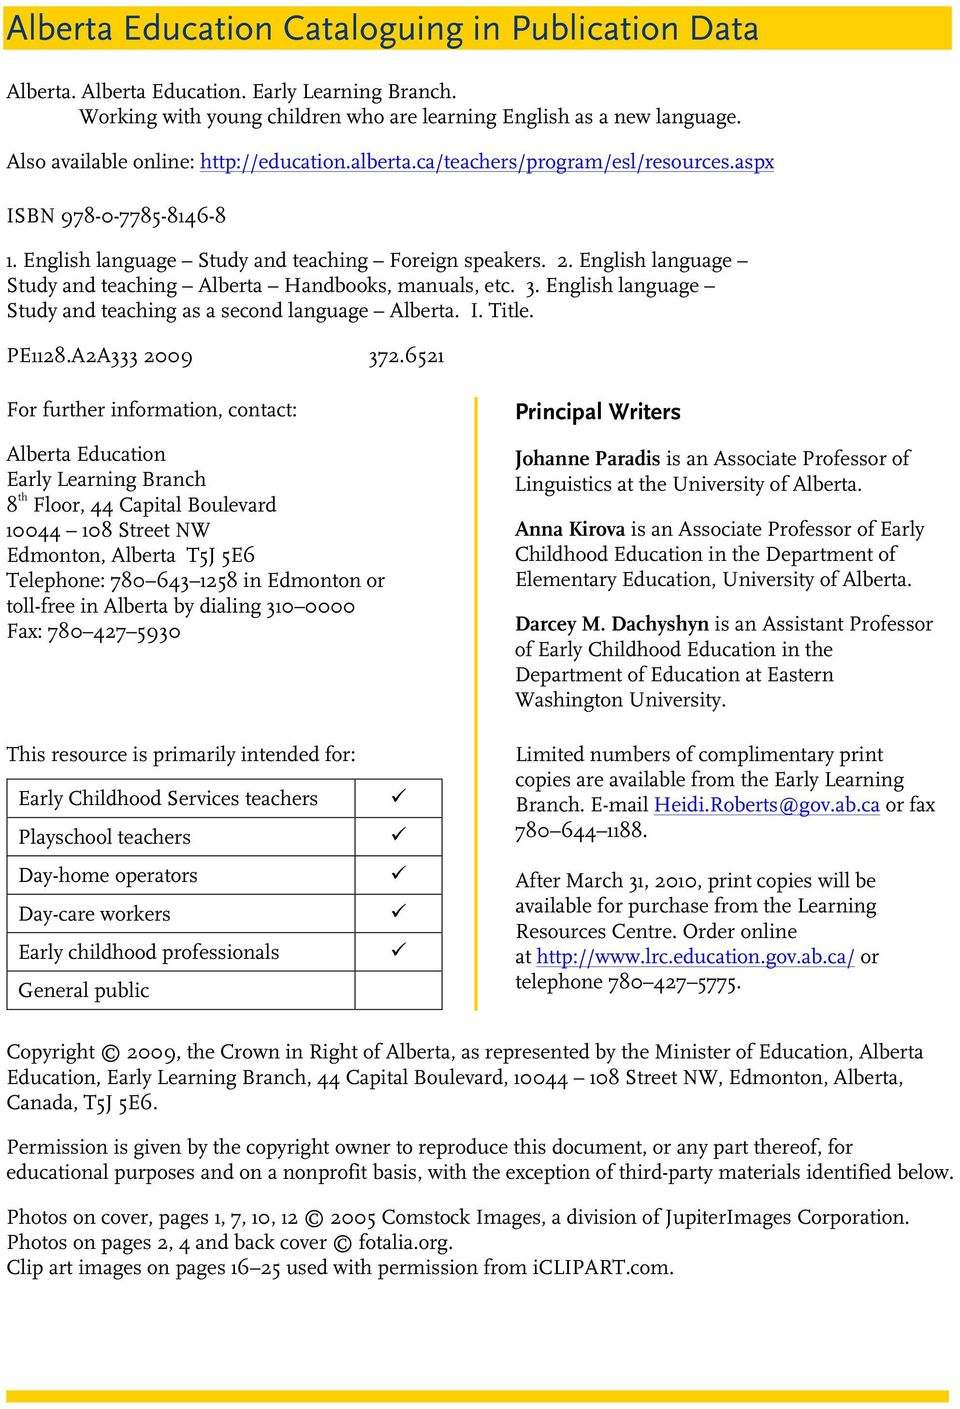 English language Study and teaching Alberta Handbooks, manuals, etc. 3. English language Study and teaching as a second language Alberta. I. Title. PE1128.A2A333 2009 372.